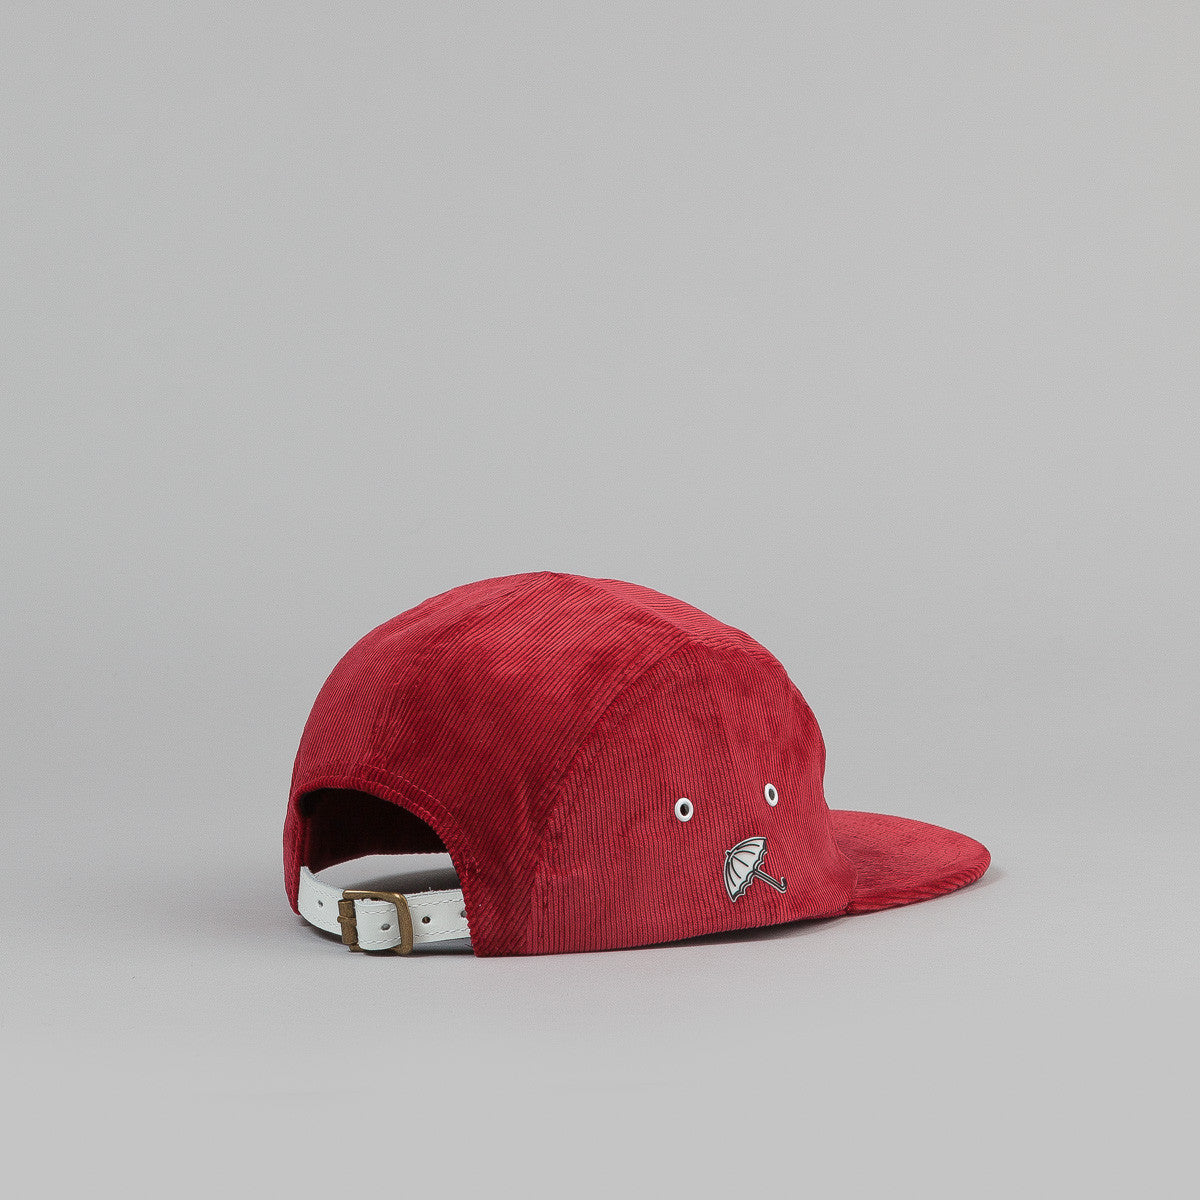 Helas Sunday 5 Panel Cap - Burgundy